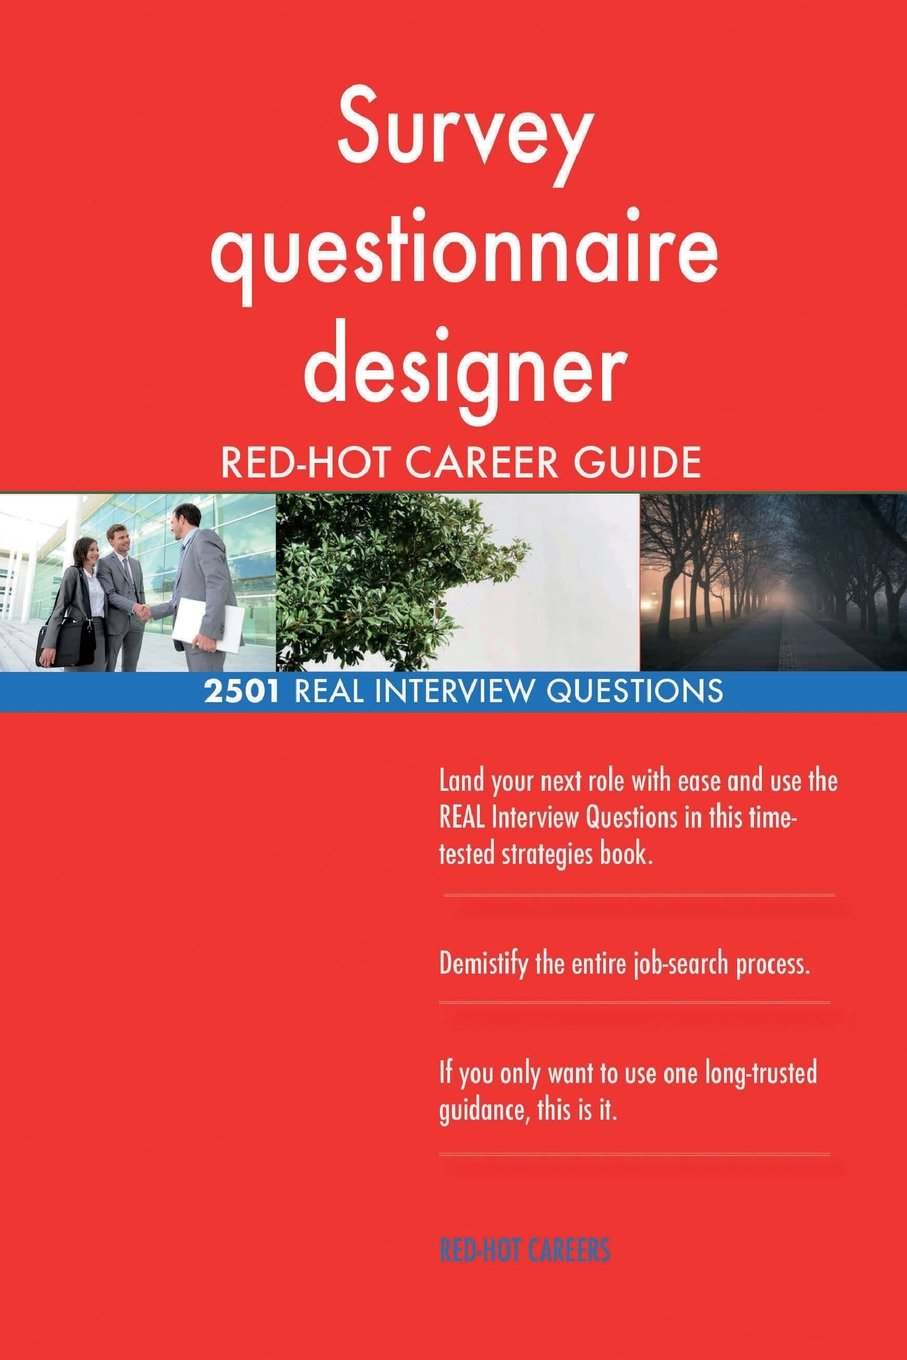 Survey Questionnaire Designer Red Hot Career 2501 Real Interview Questions Careers Red Hot 9781719292672 Amazon Com Books